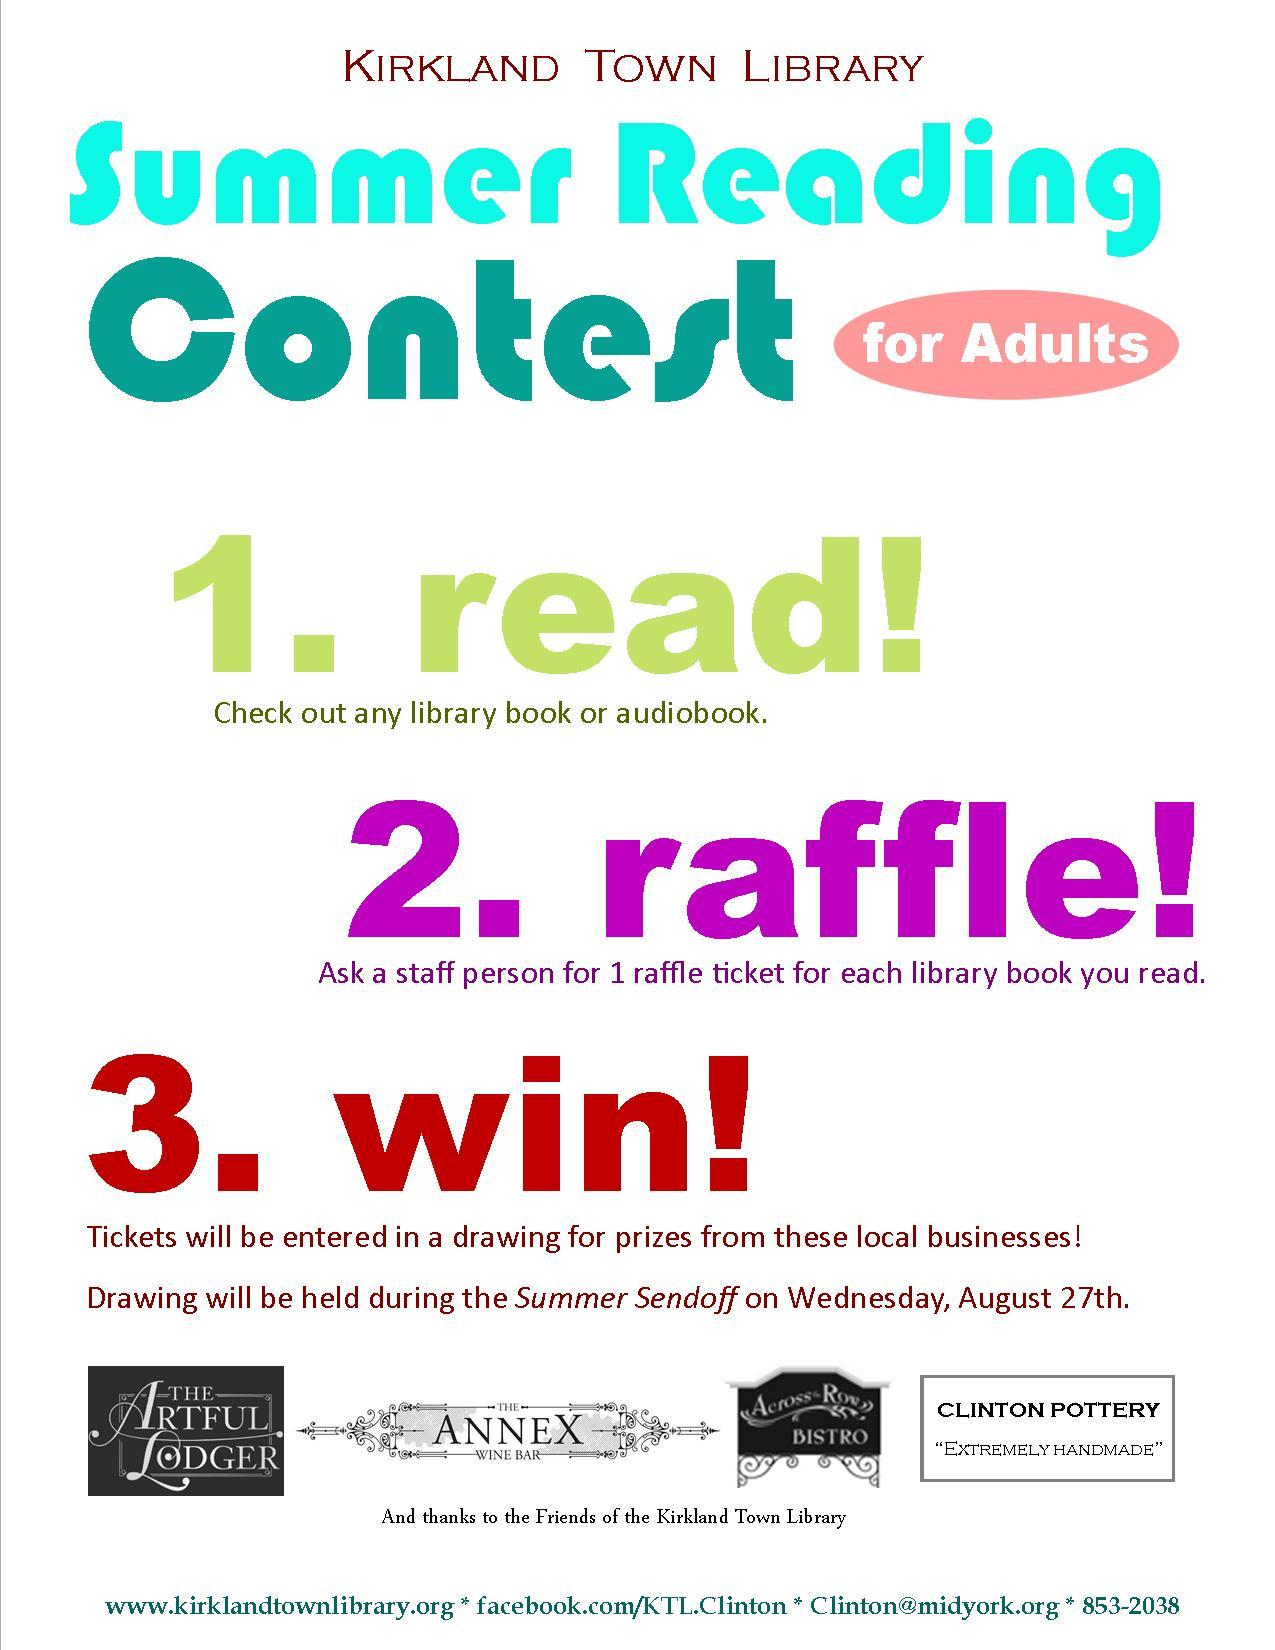 Enter the adult reading contest!